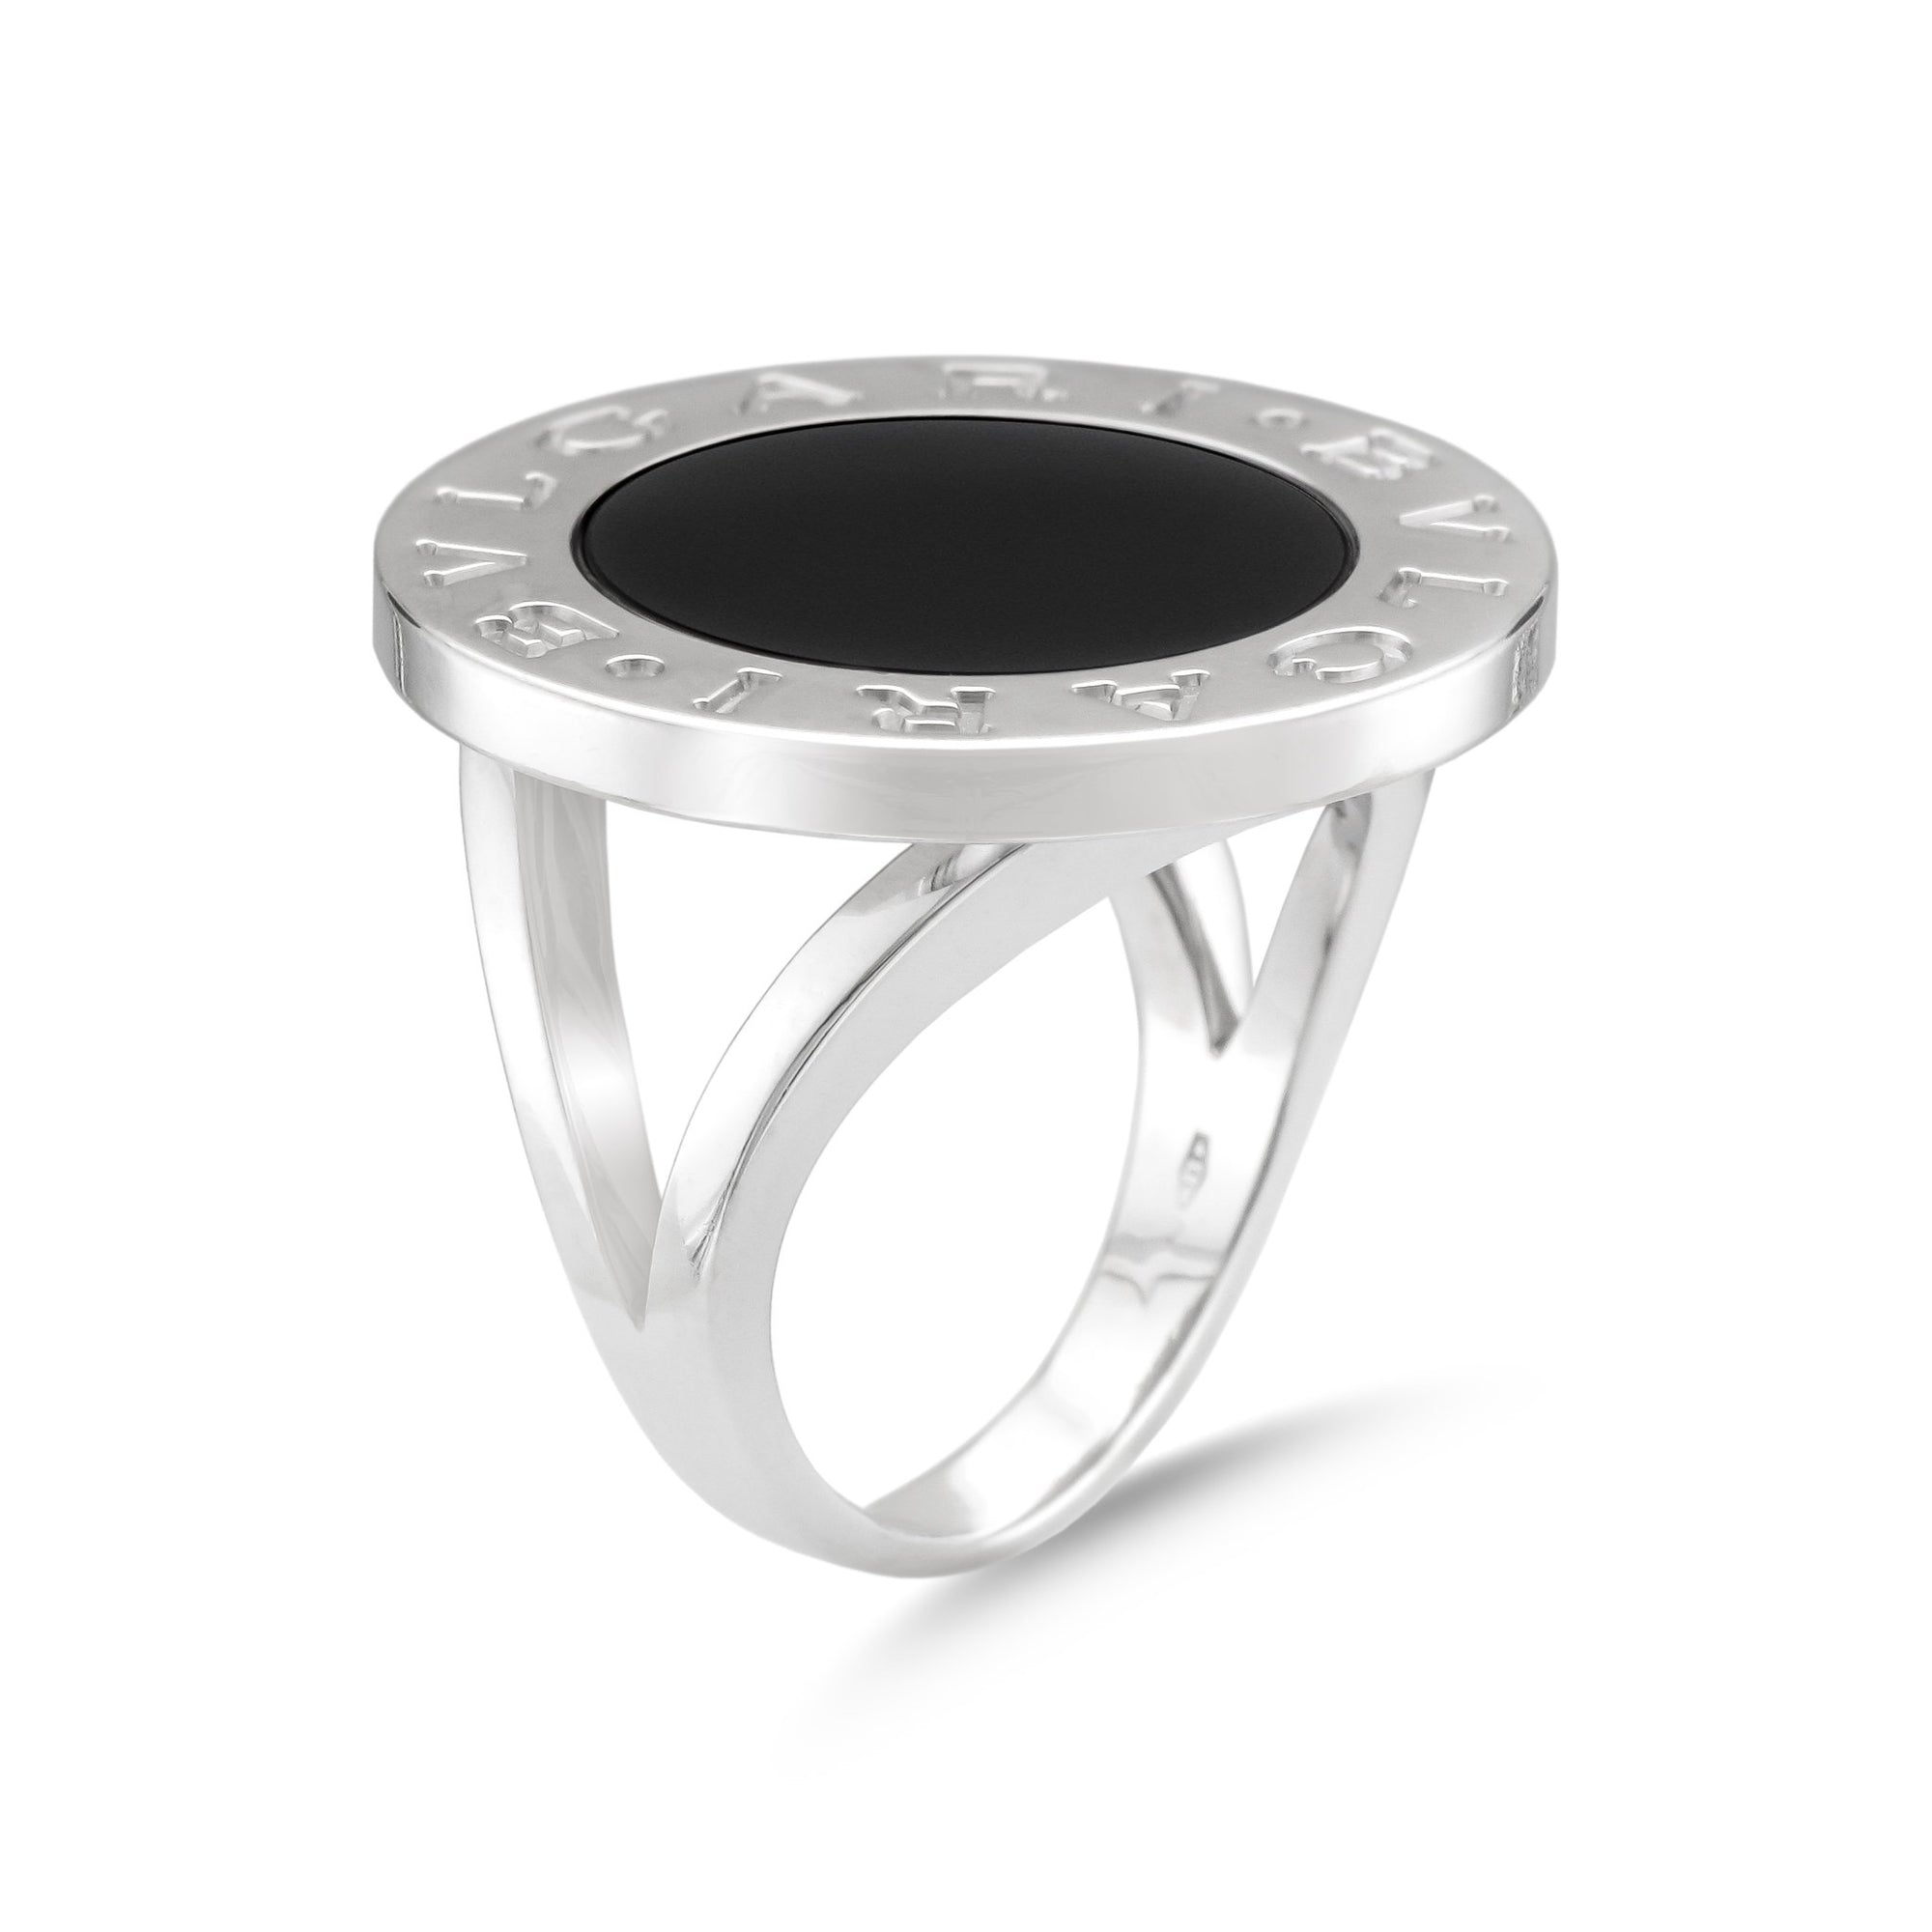 Bvlgari Bvlgari 18ct White Gold Large Black Onyx Ring